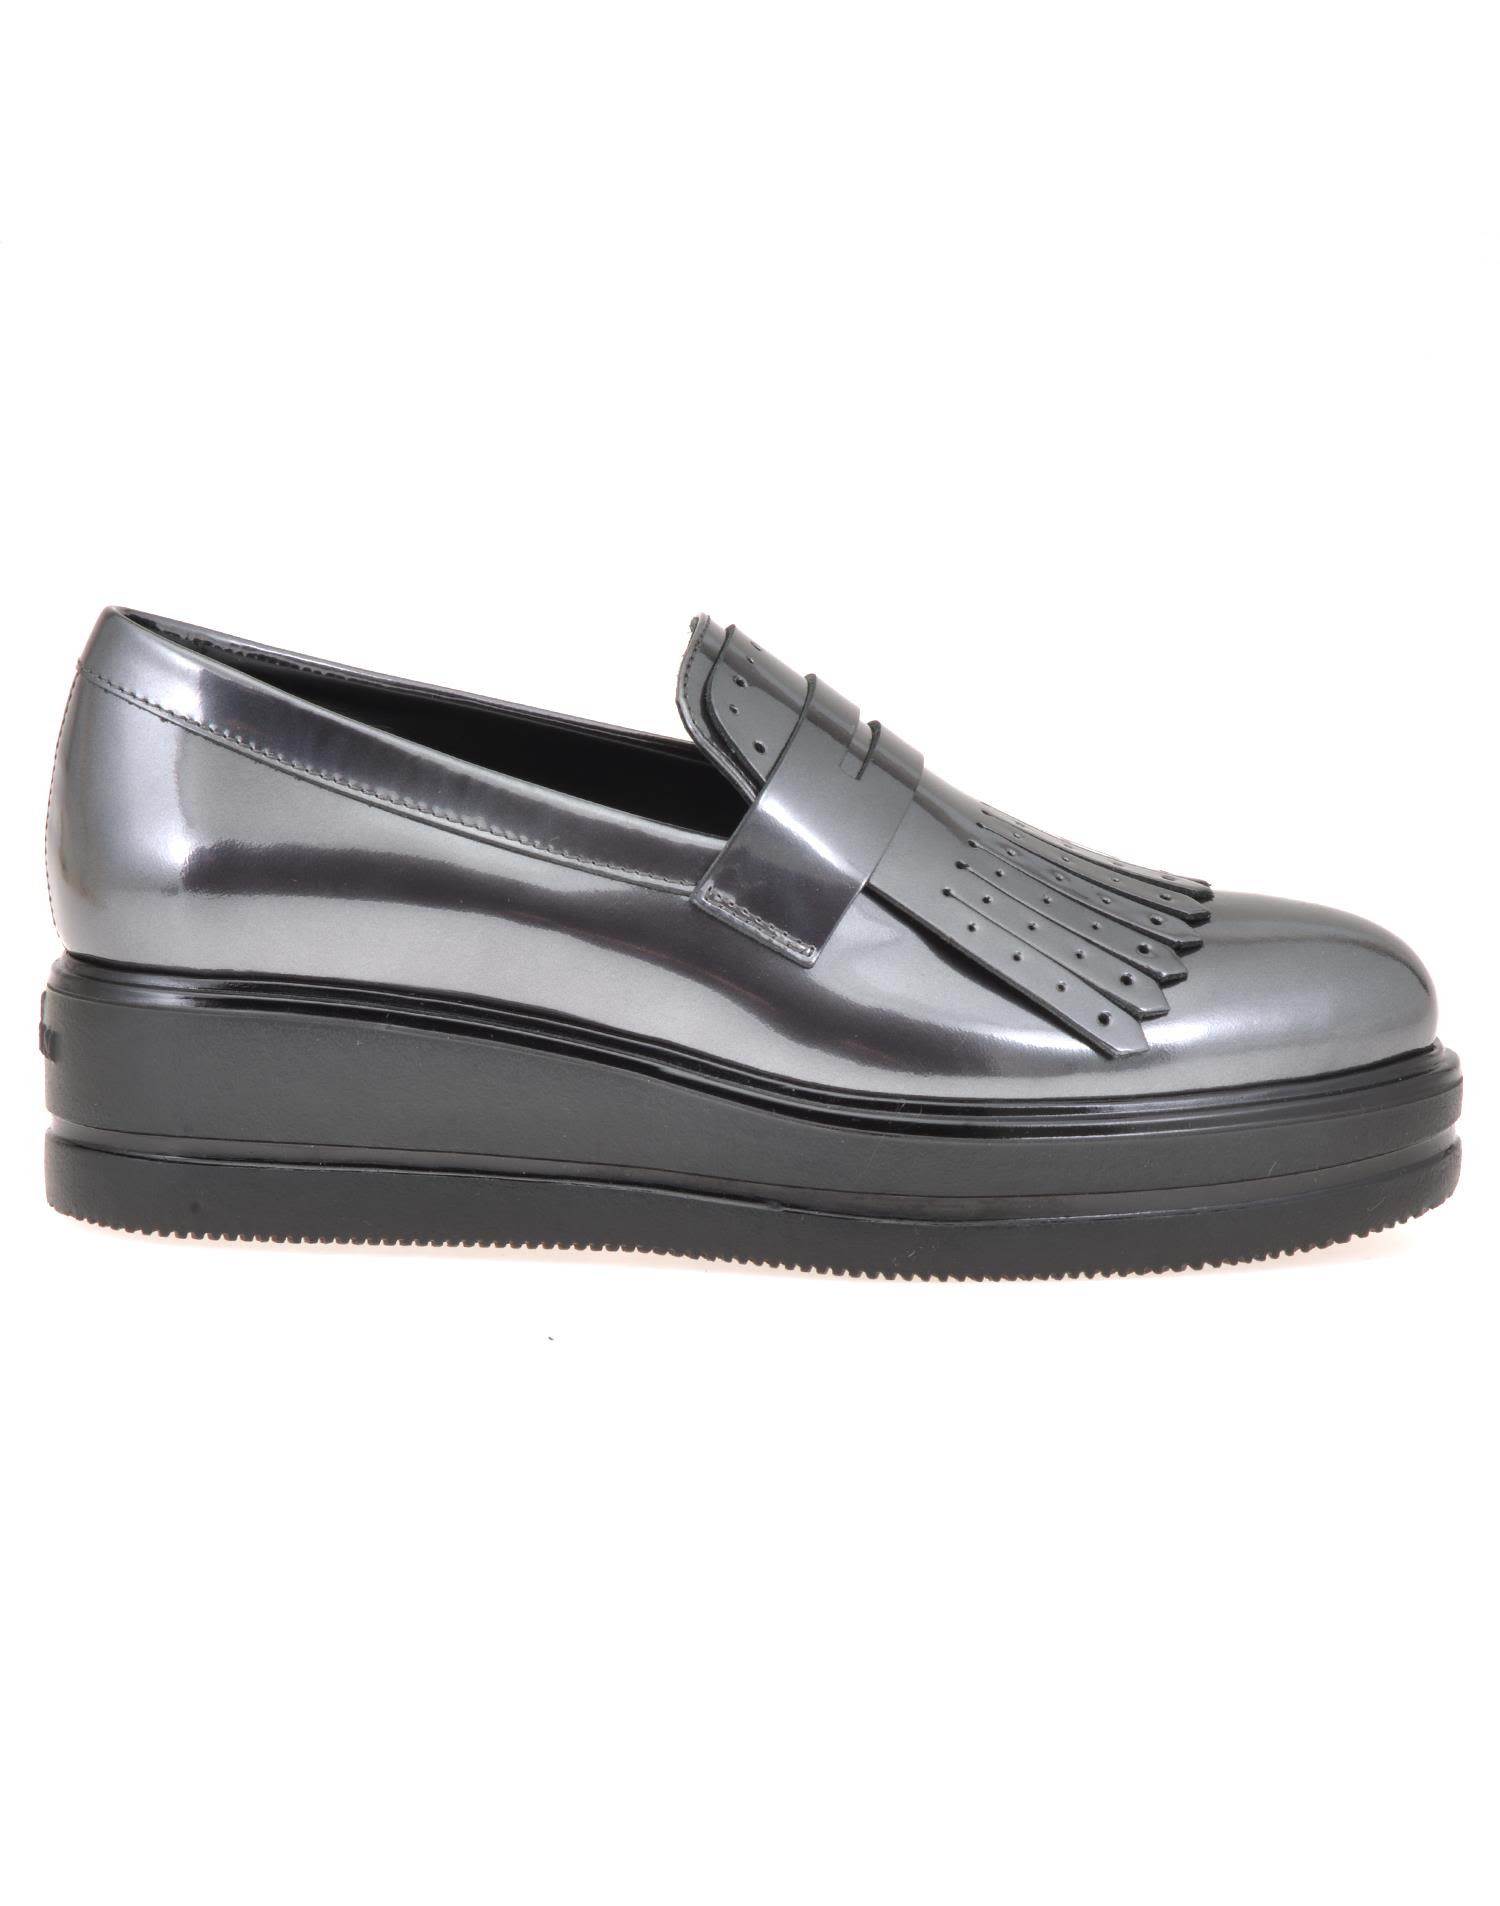 Hogan Leather Loafer